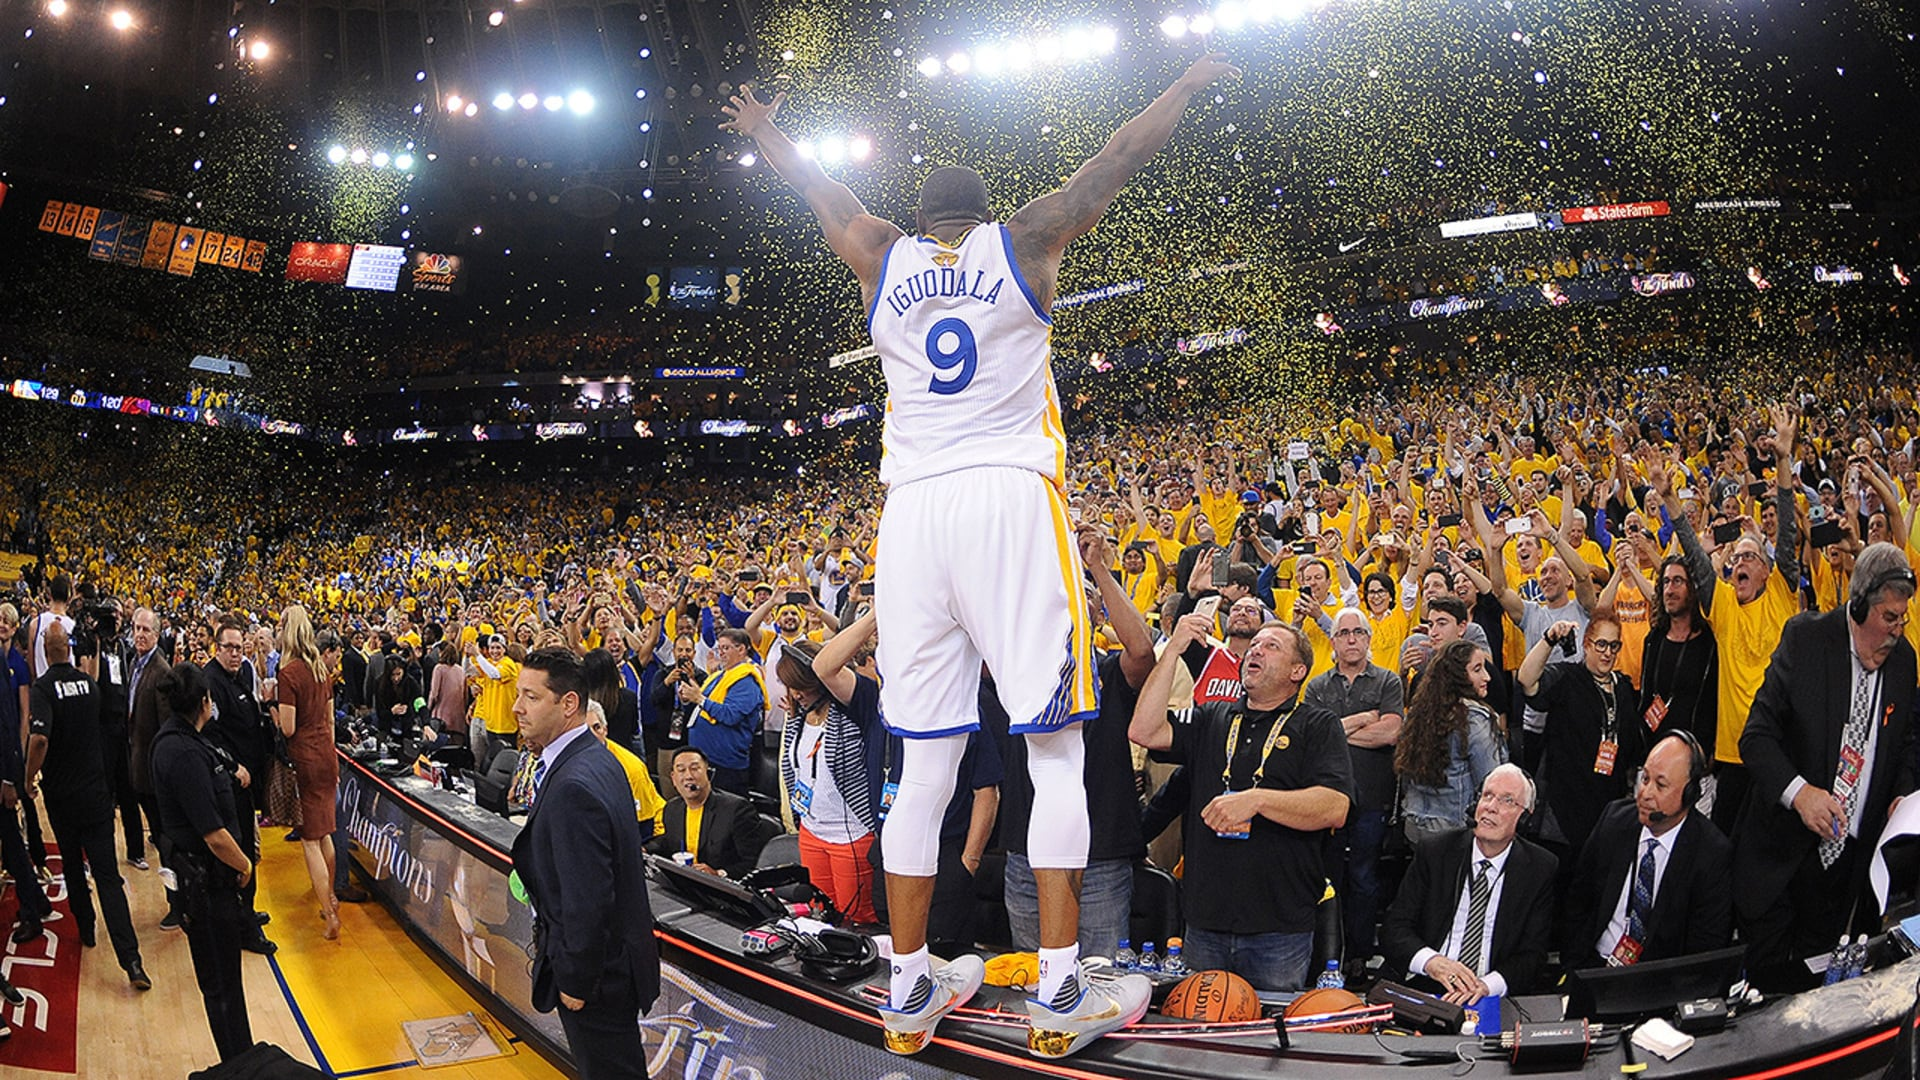 Welcoming Andre Iguodala on Warriors Ground